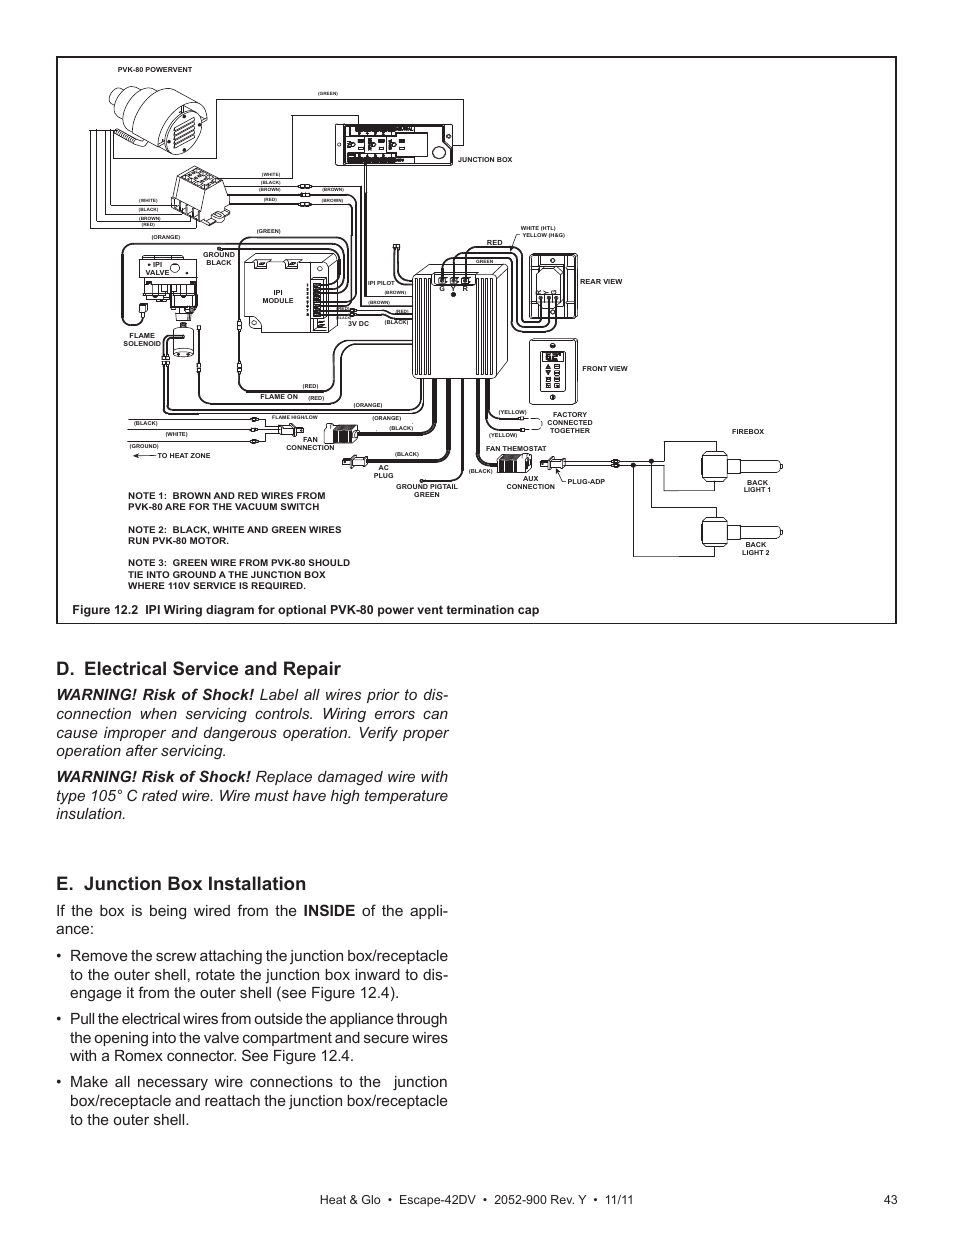 medium resolution of d electrical service and repair e junction box installation heat glo fireplace heat glo escape 42dv user manual page 43 61